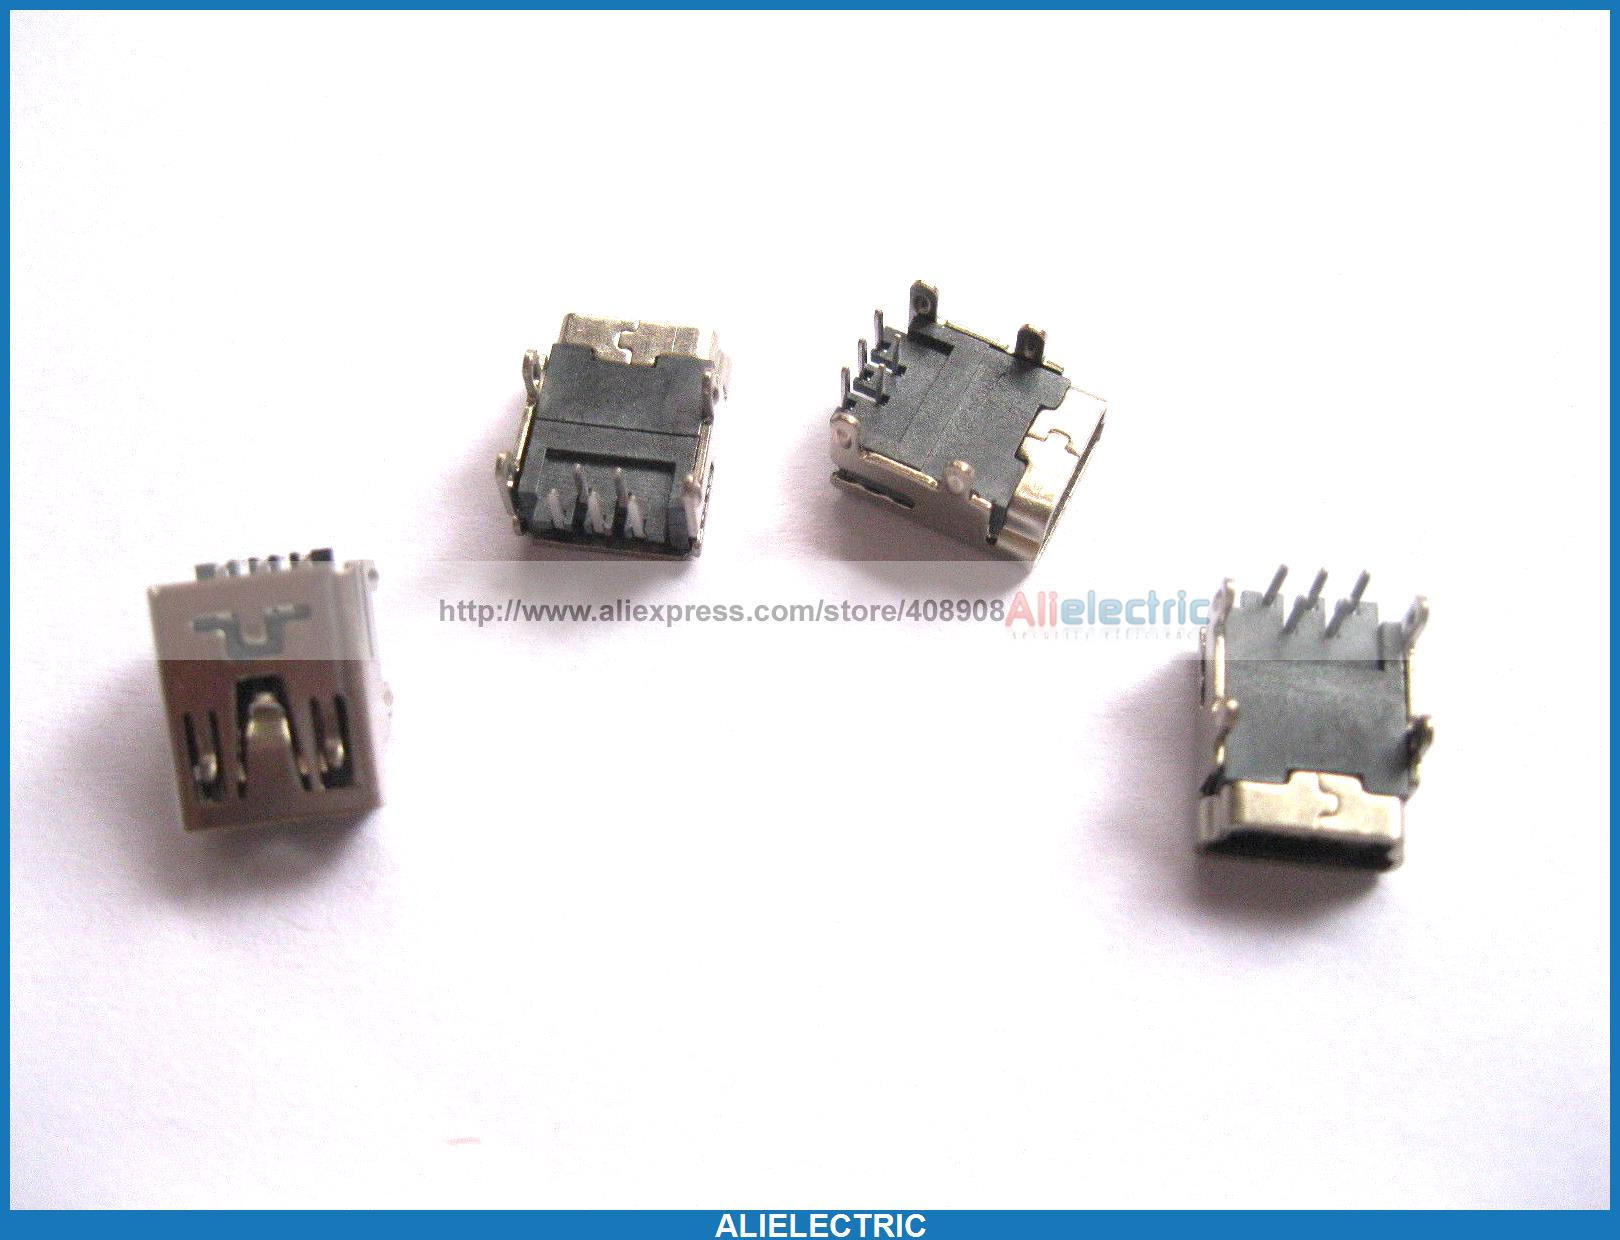 500 Pcs Mini USB Jack Female Socket Connector 5 Pin 90 degree<br><br>Aliexpress